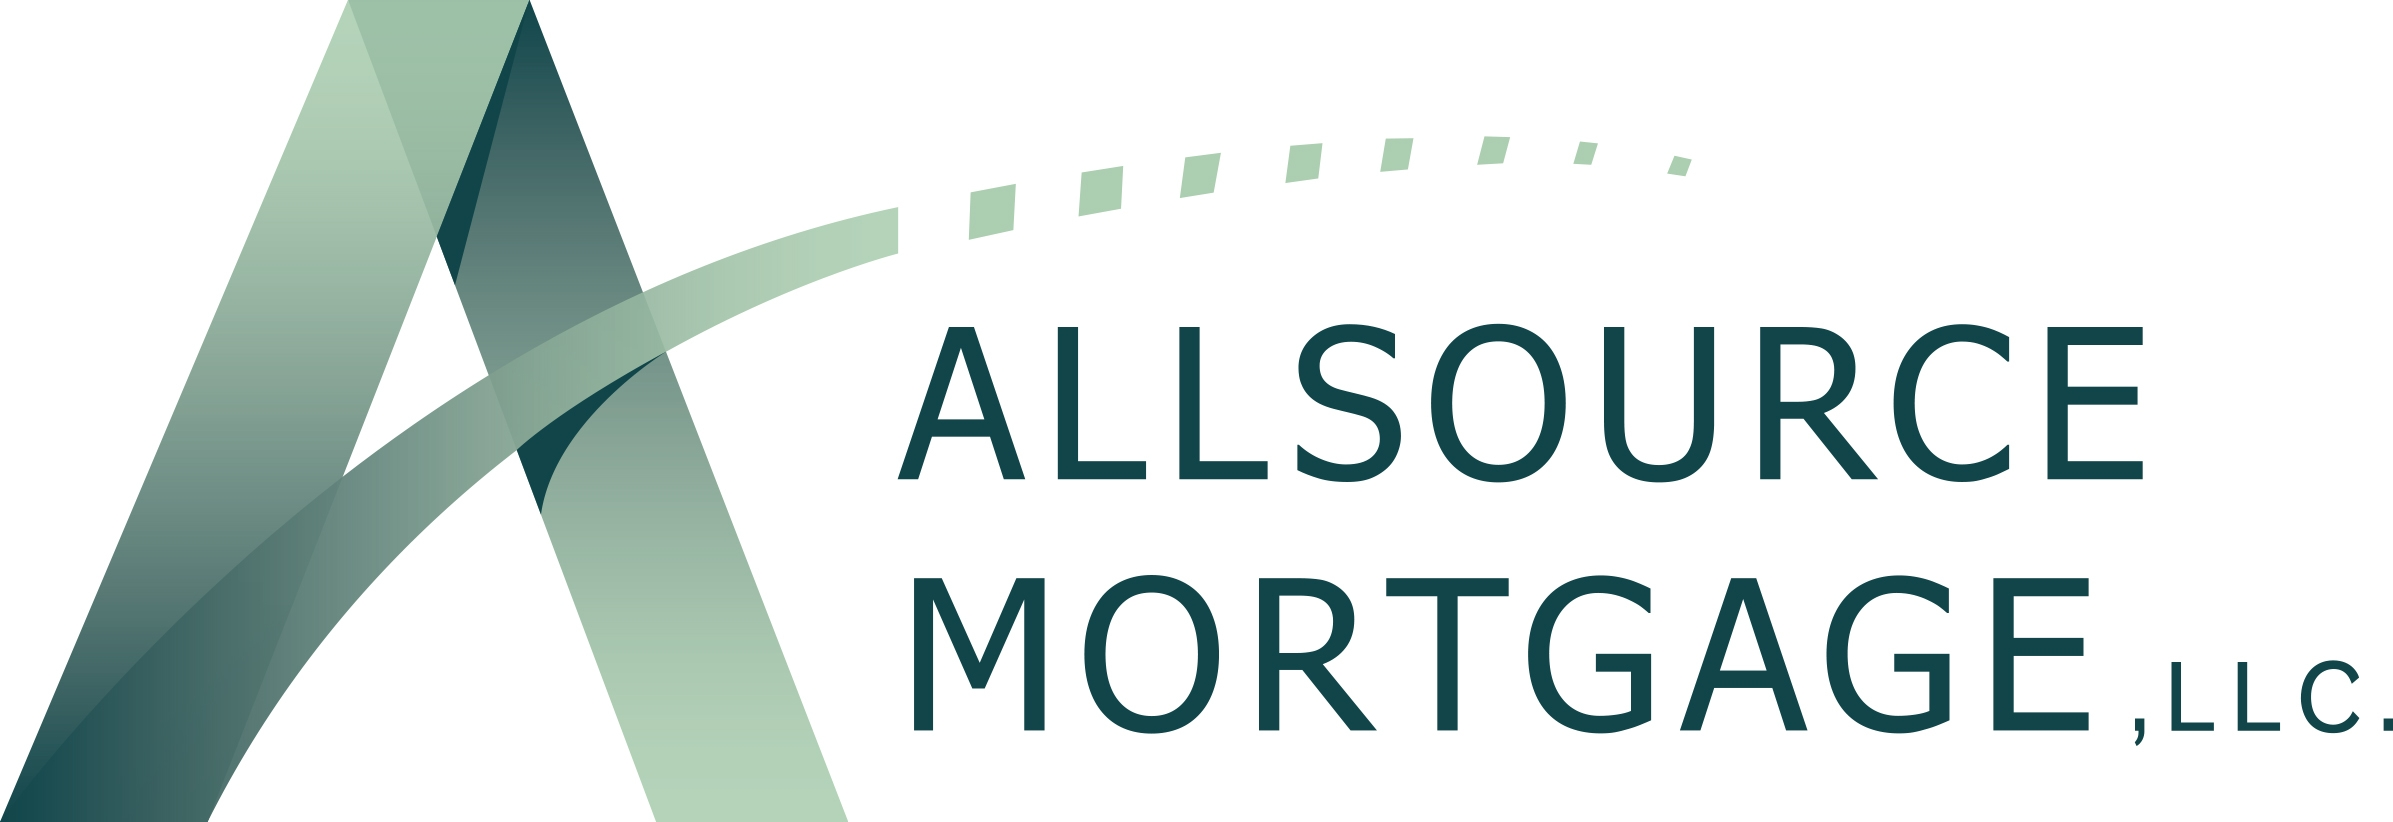 Allsource Mortgage LLC